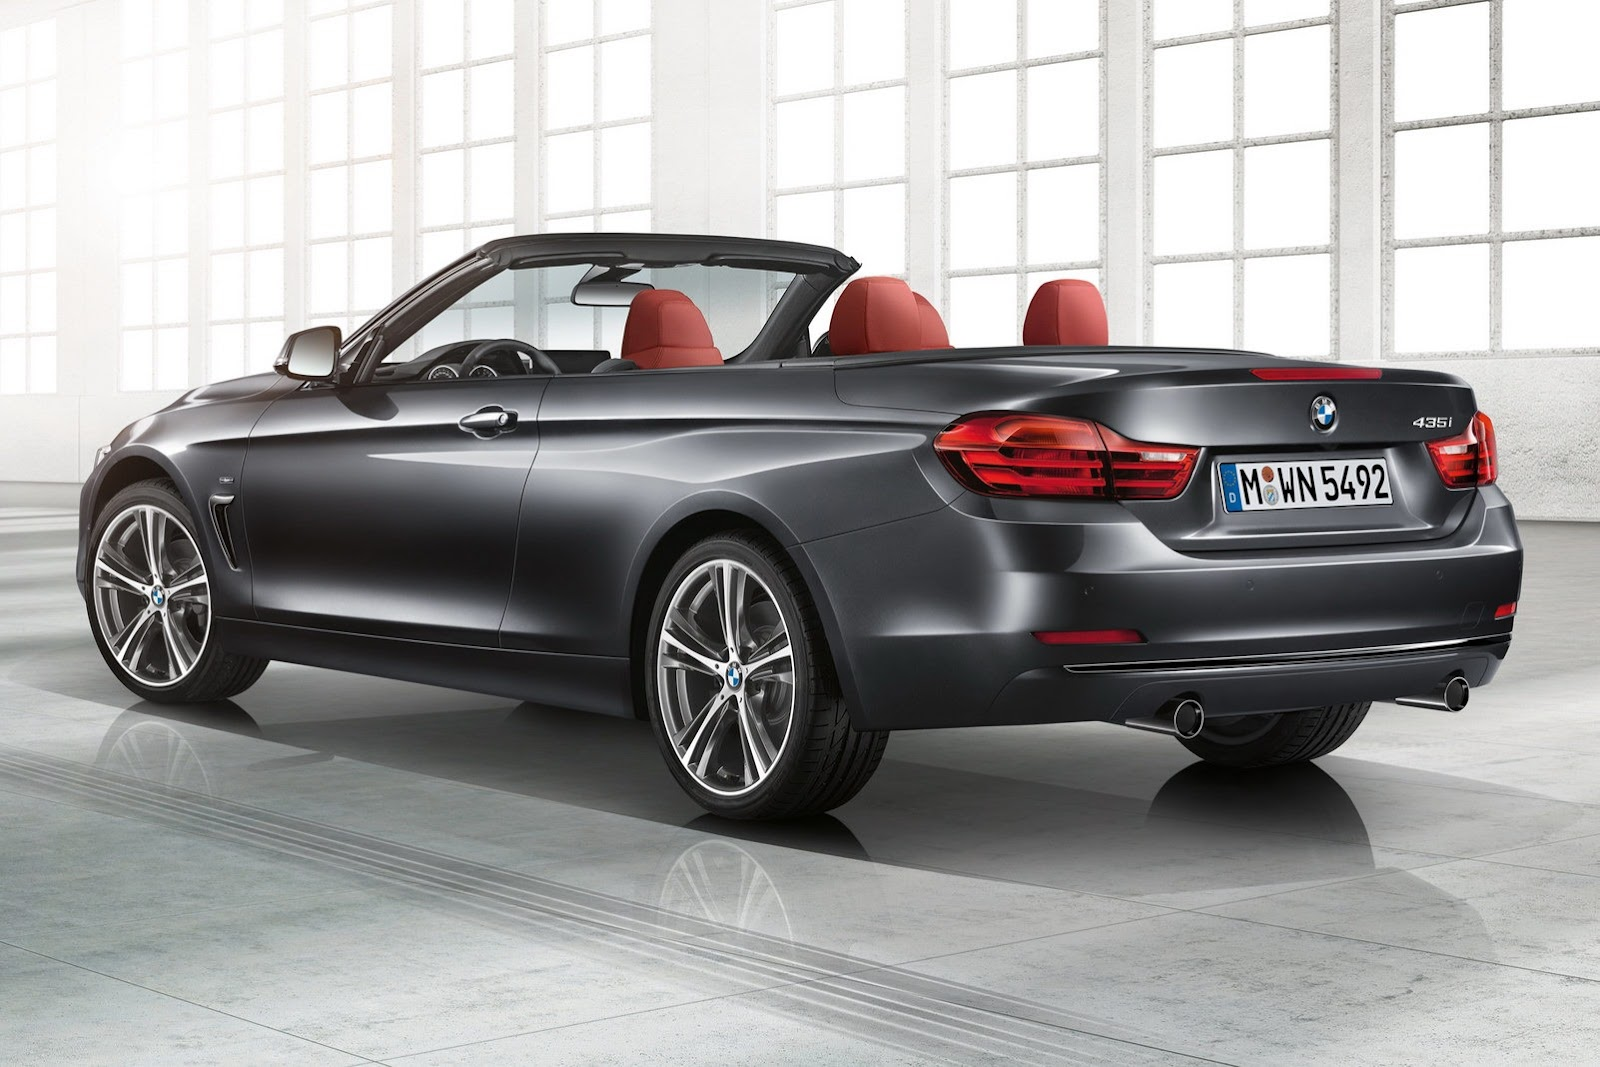 2013 bmw s rie 4 coup cabriolet f32 3 page 19. Black Bedroom Furniture Sets. Home Design Ideas